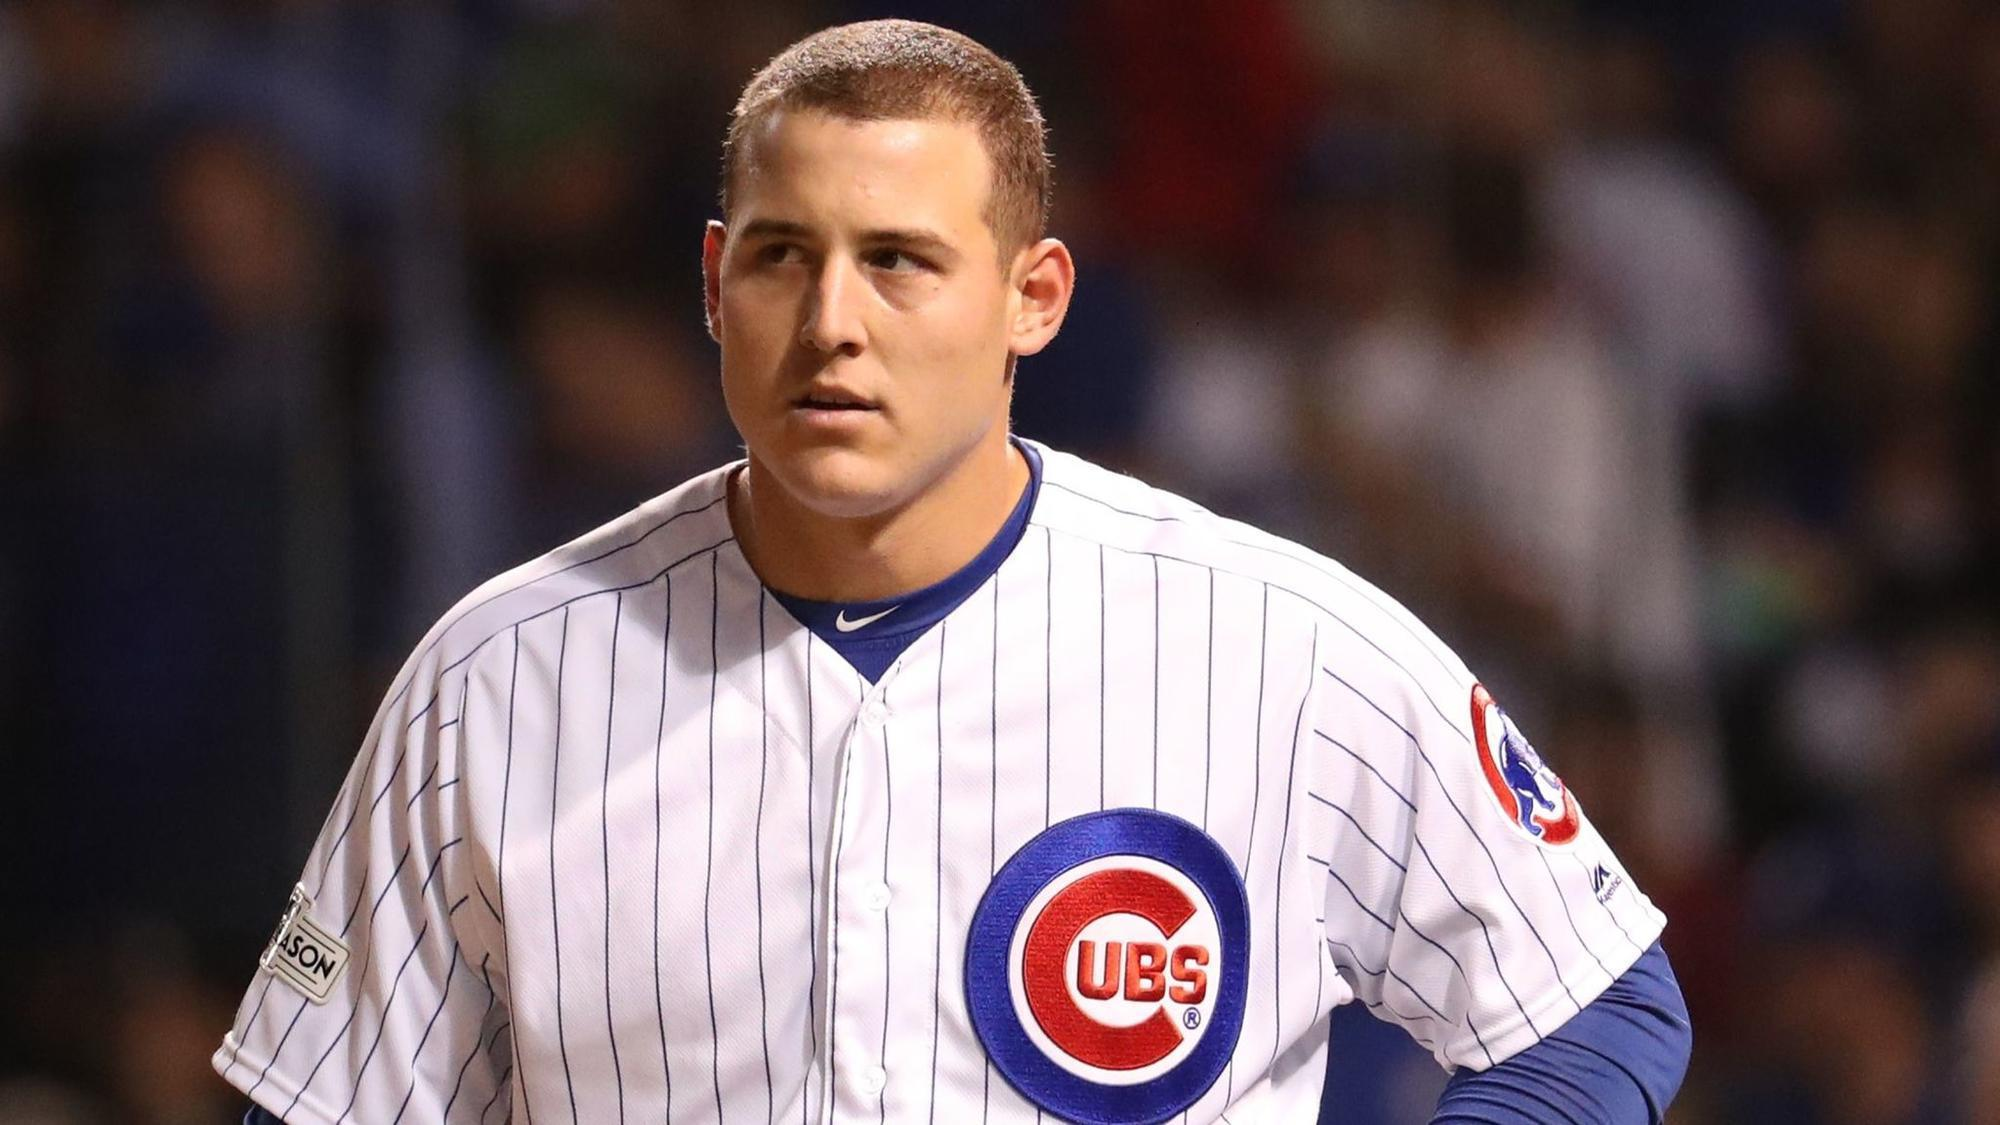 Anthony Rizzo Offers Support At Vigil In Florida In Wake